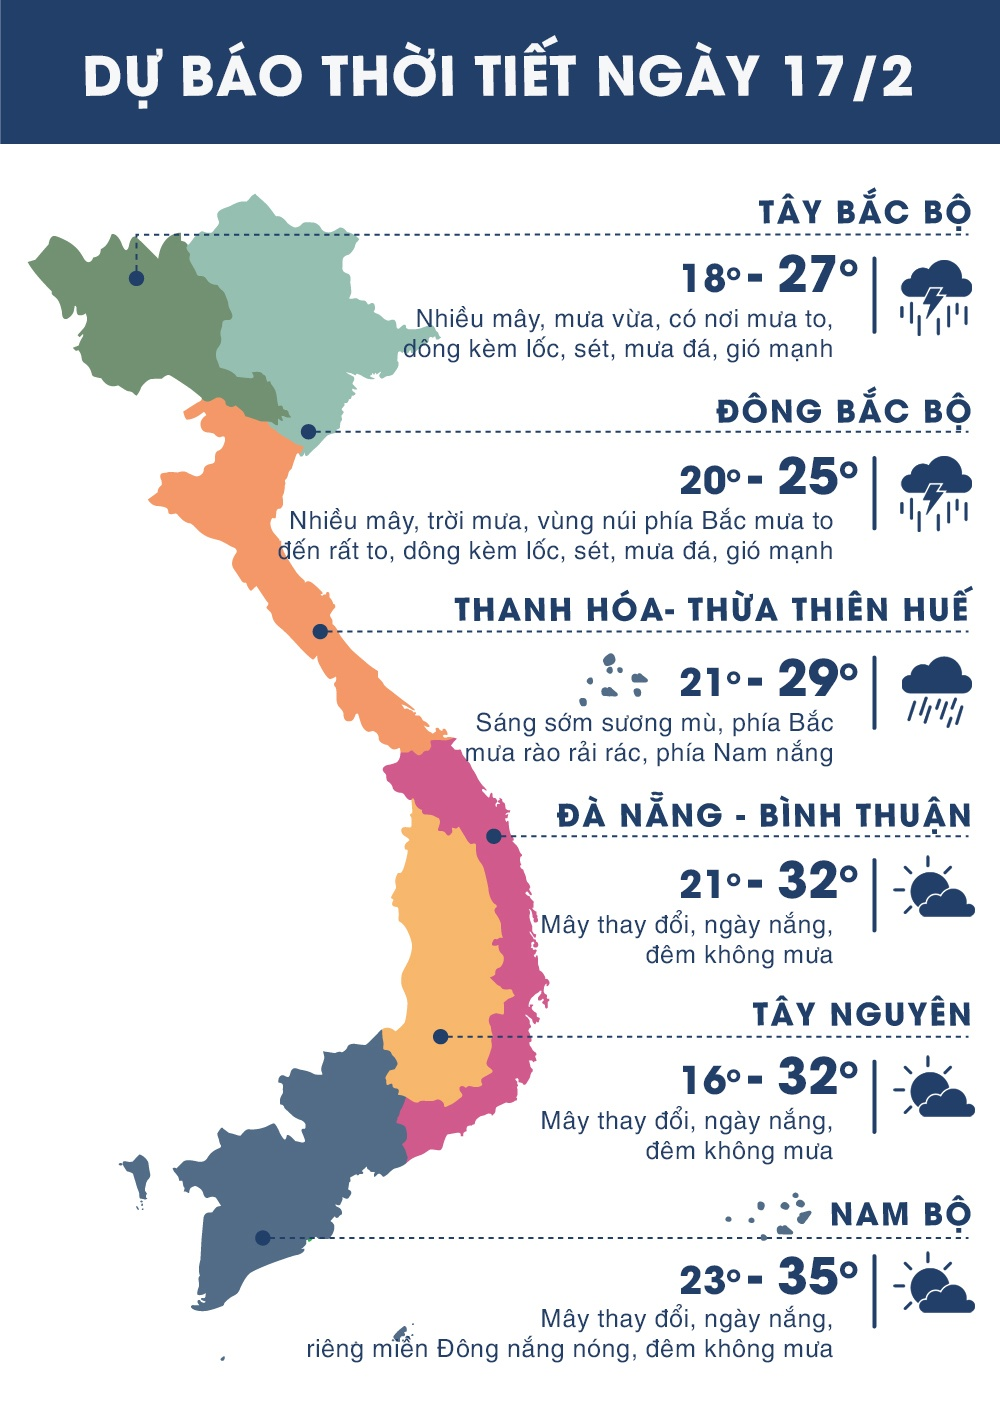 thoi tiet ngay 17/2 anh 1